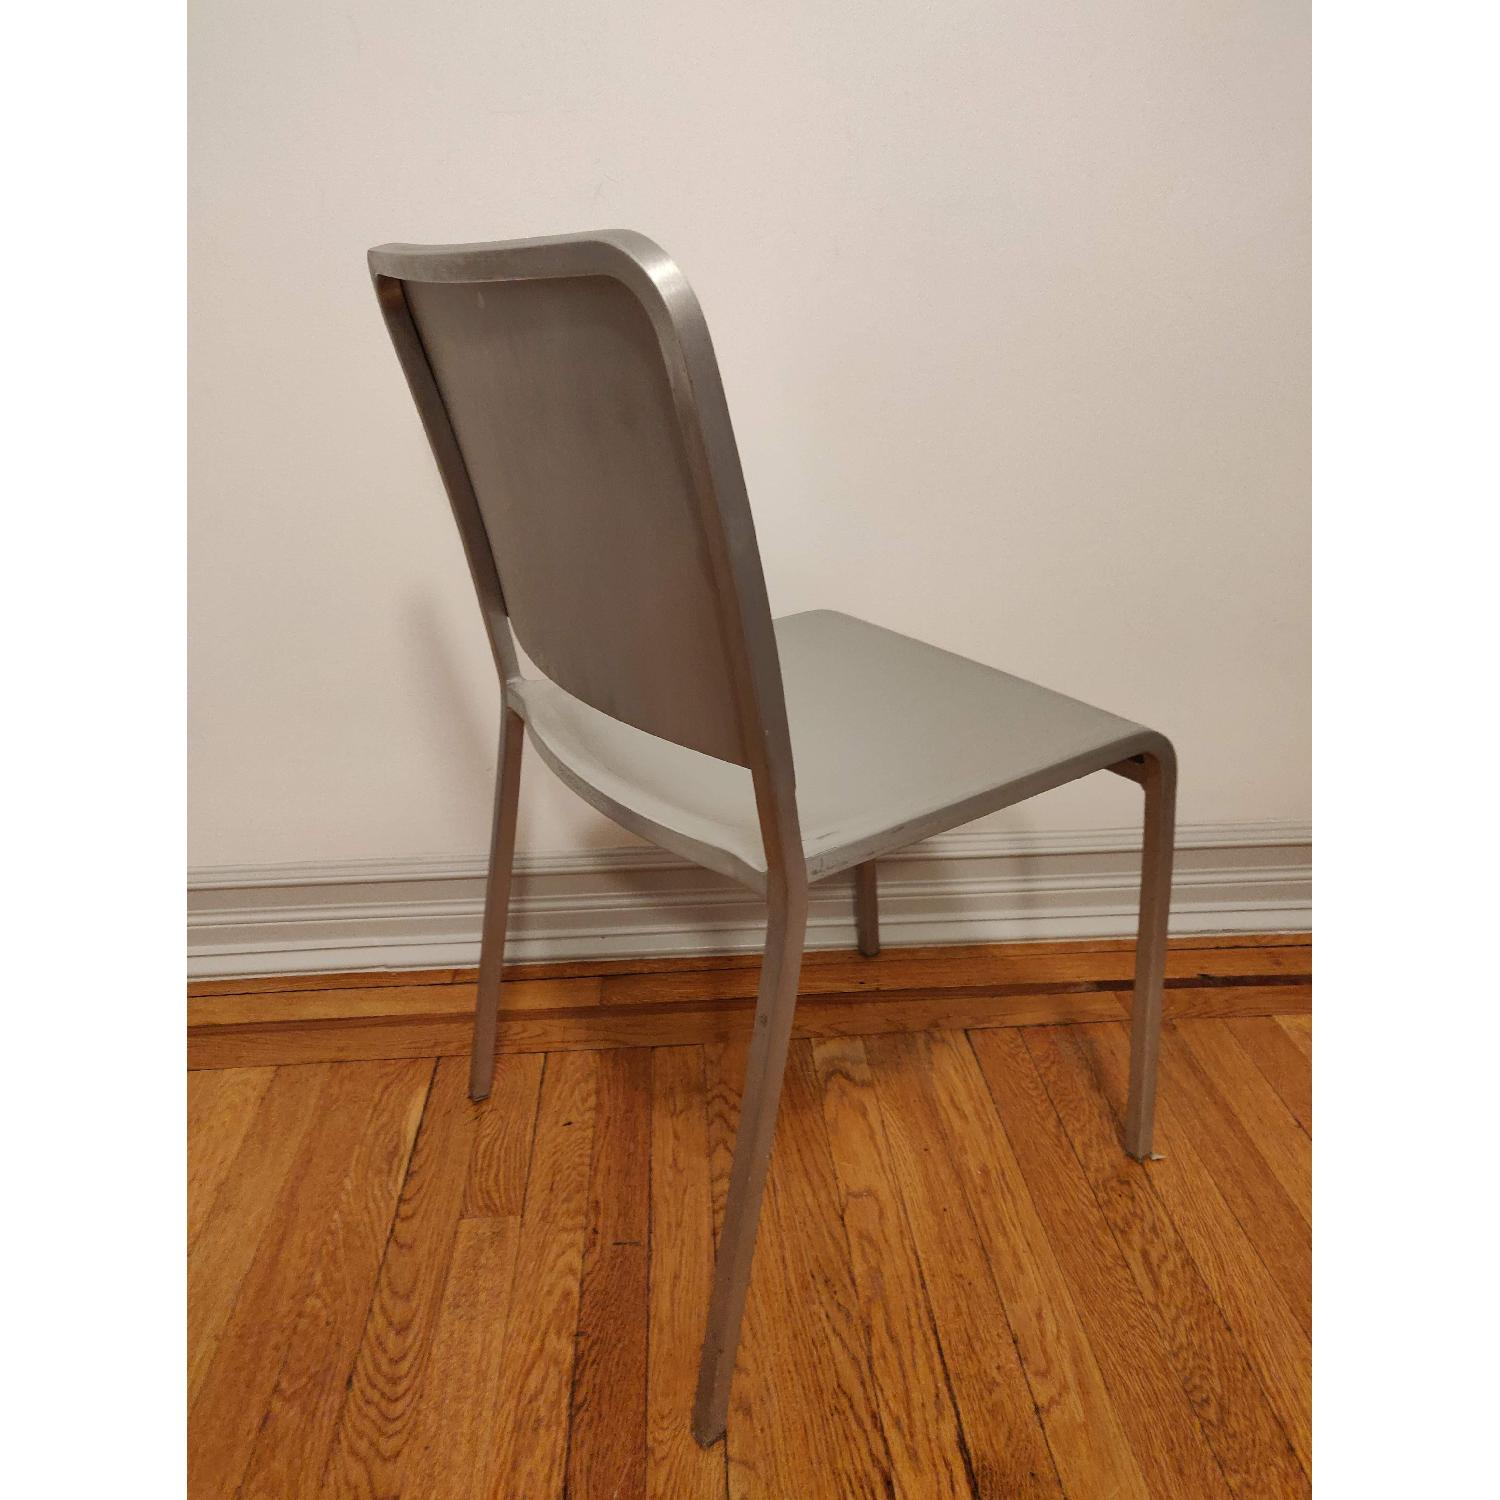 Emeco 20-06 Chairs by Norman Foster - image-3